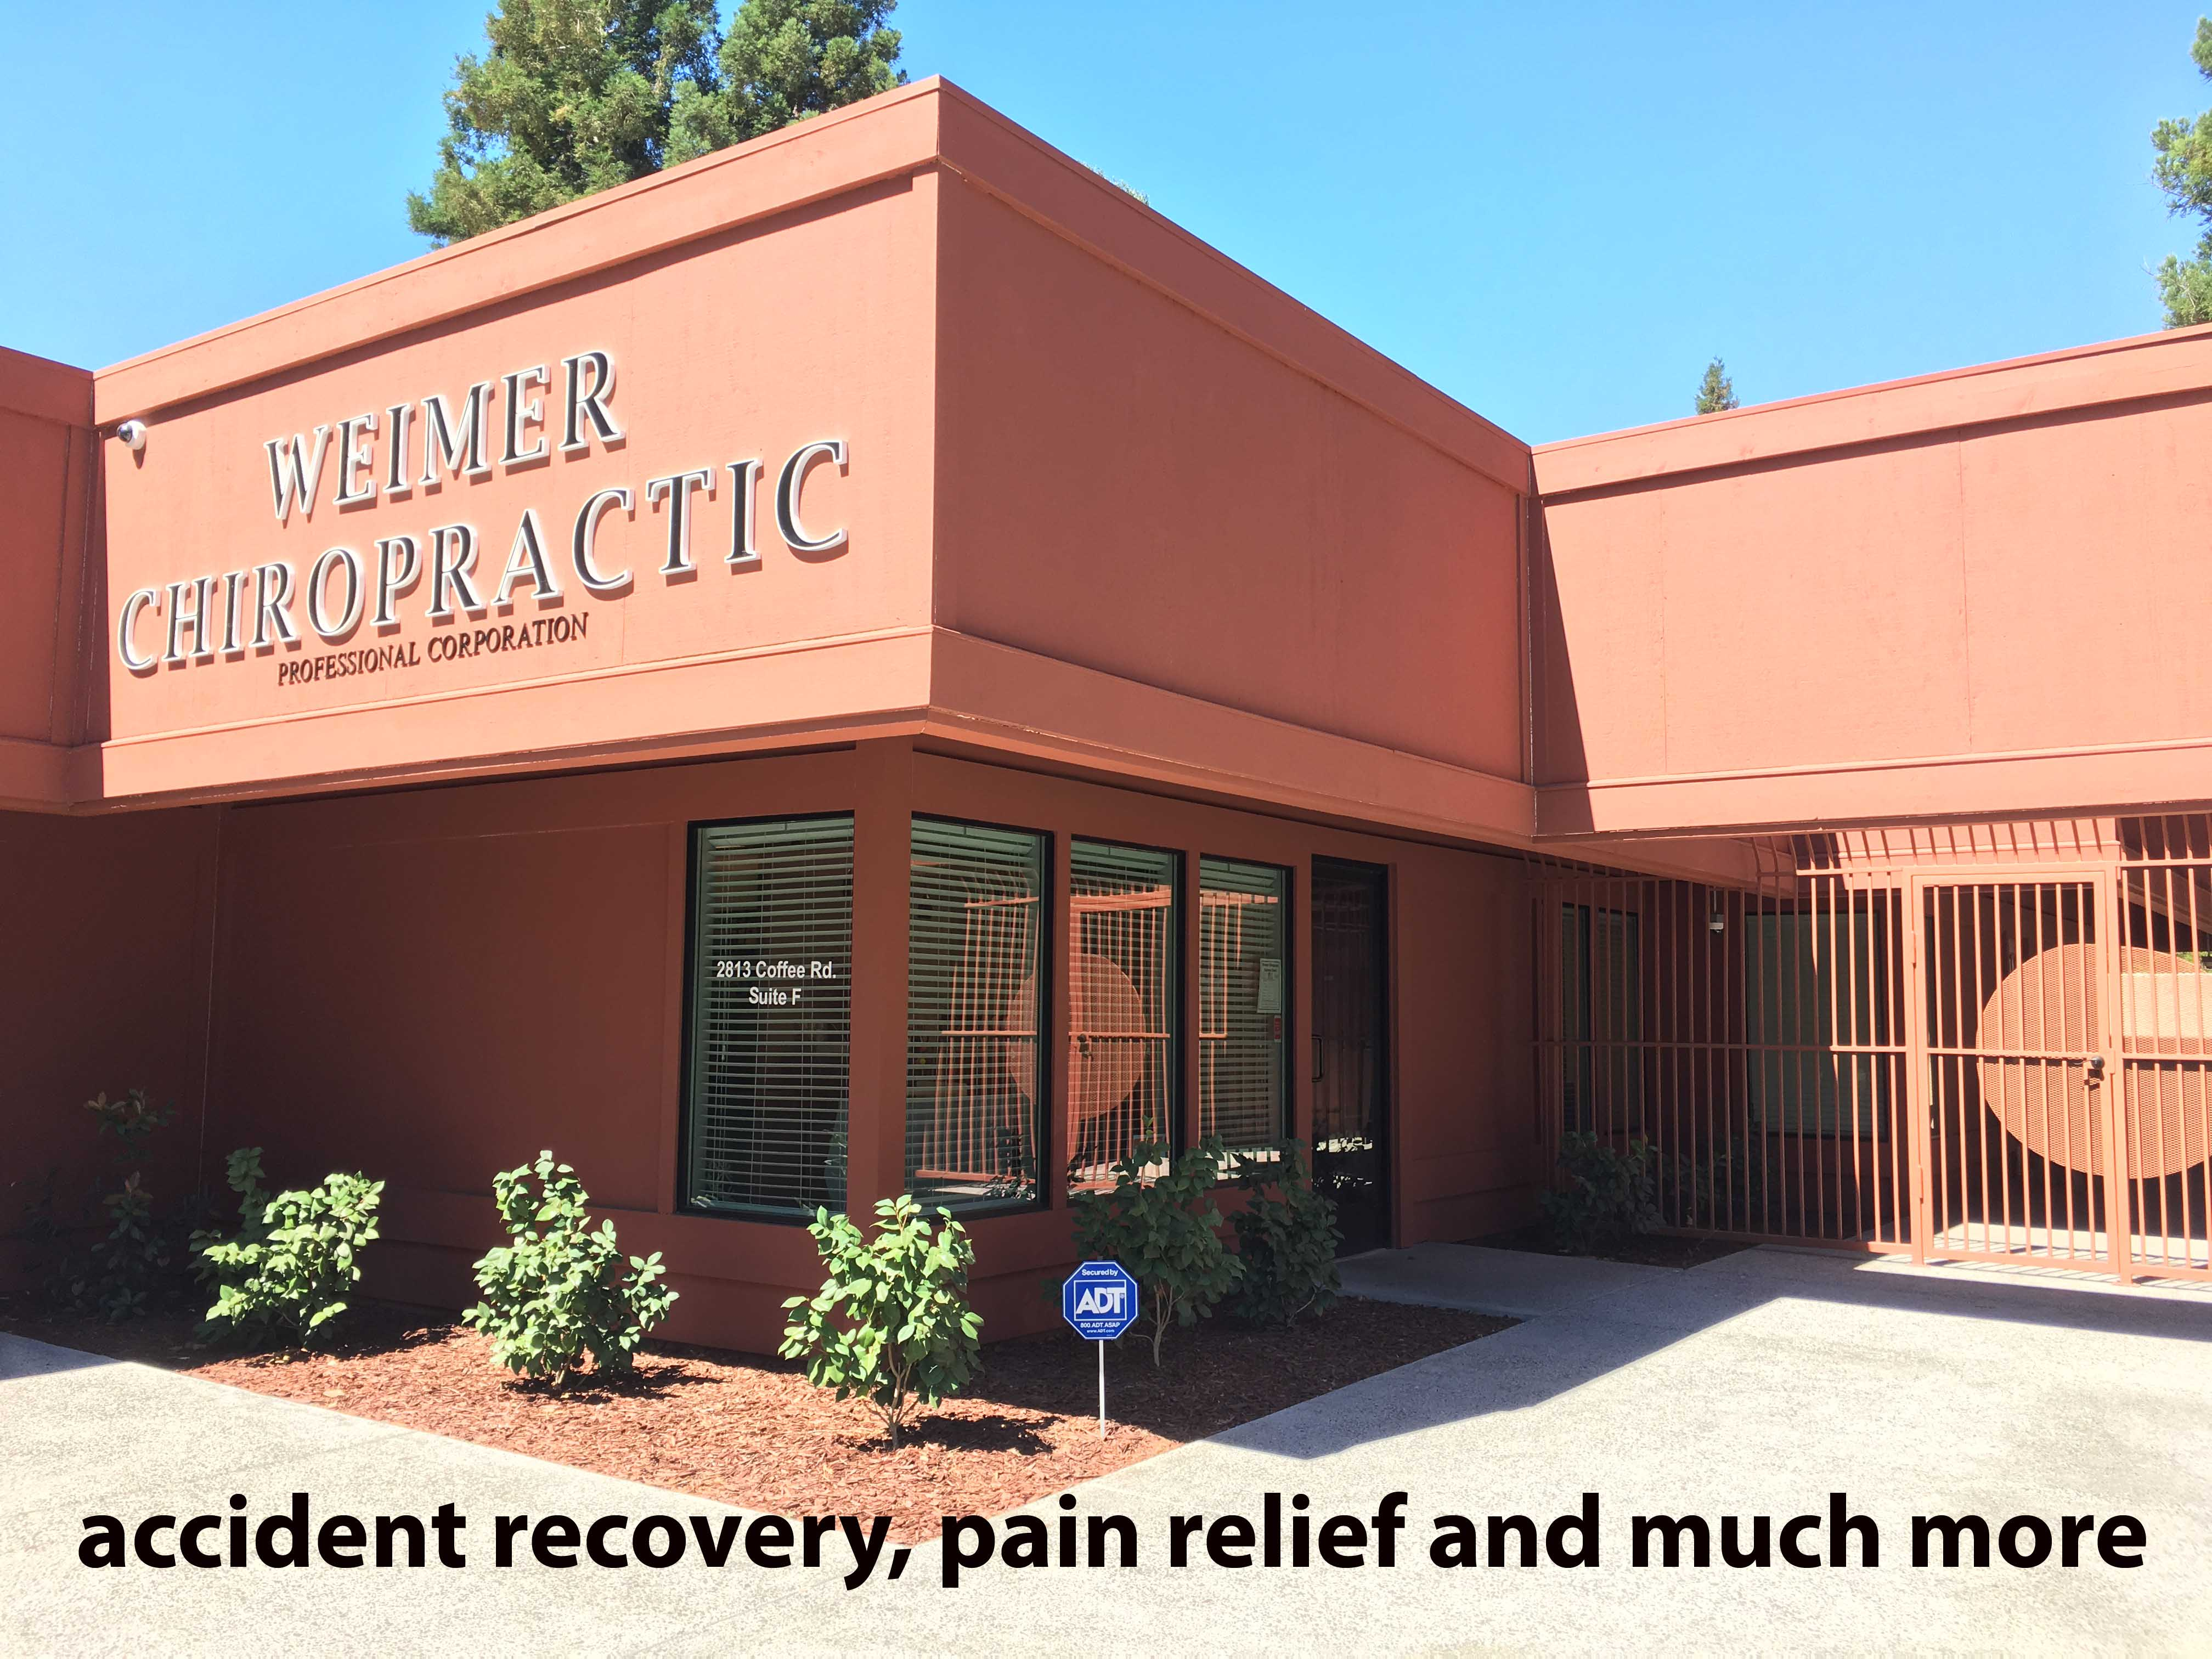 accident recovery and pain management at Weimer Chiropractic.